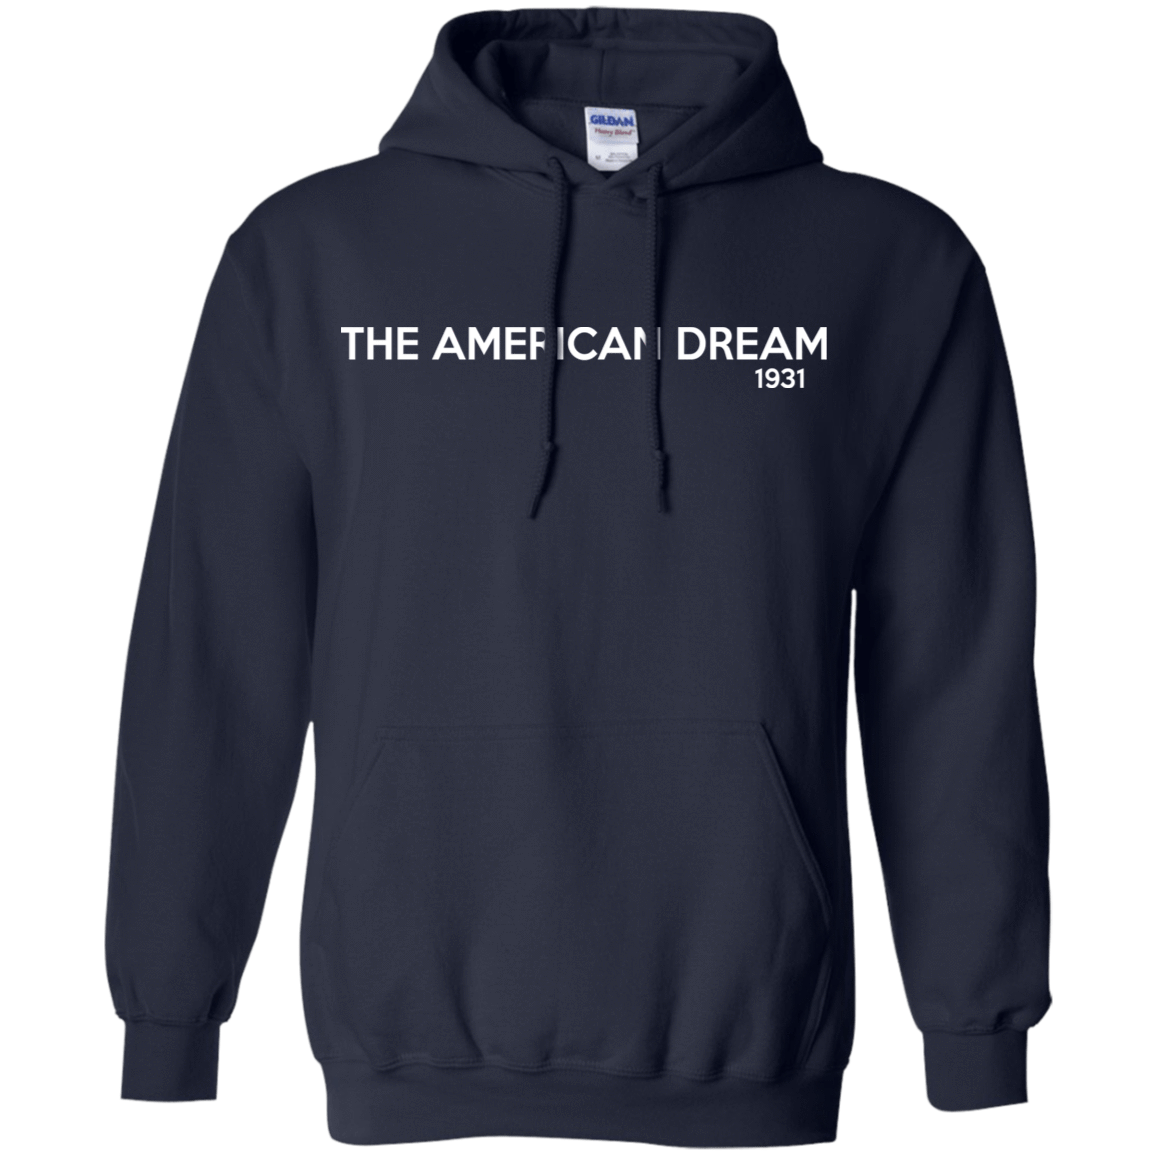 The American Dream 1931 541-4742-72086247-23135 - Tee Ript